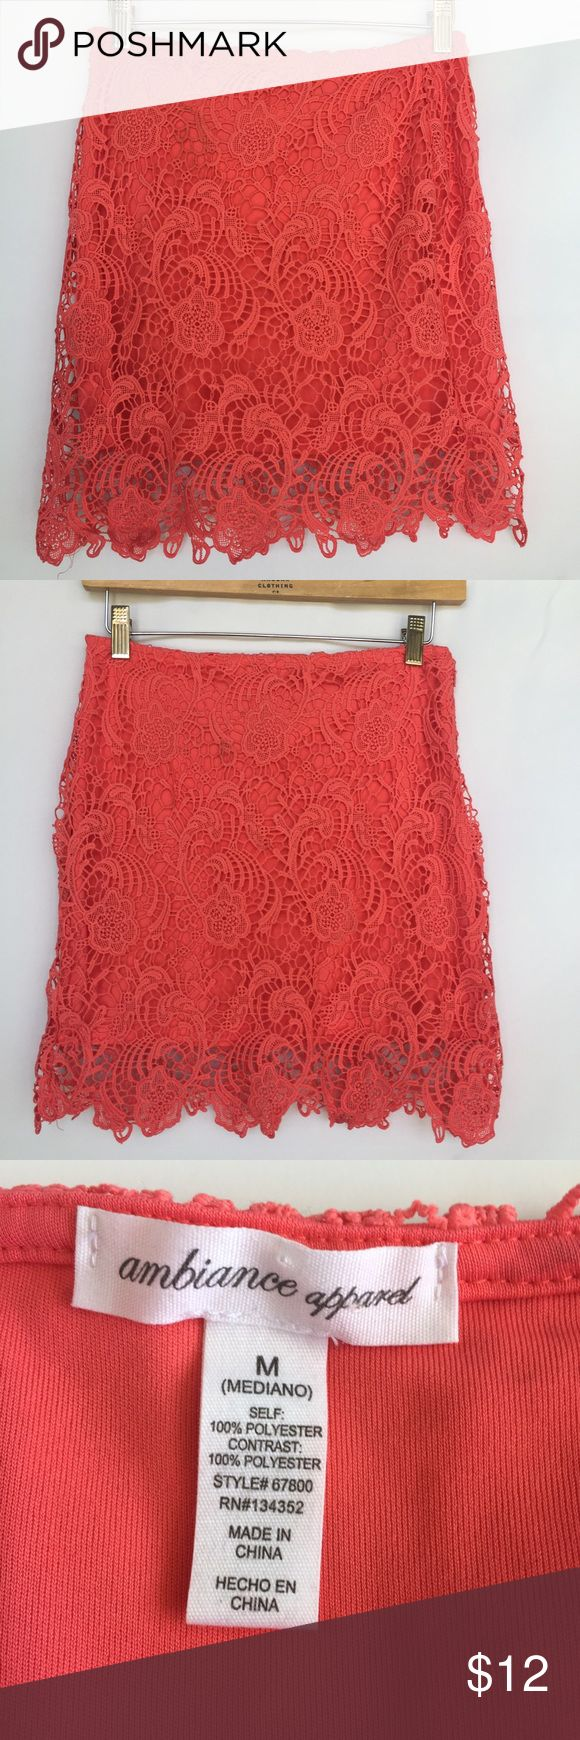 """Ambiance Apparel coral lace mini skirt Gently used Ambiance Apparel coral lace skirt size medium but fits like a small. Approximate measurements flat waist 13.5"""", flat hips 15.5"""", length 18"""". Is lined and has side zipper Ambiance Apparel Skirts Mini"""